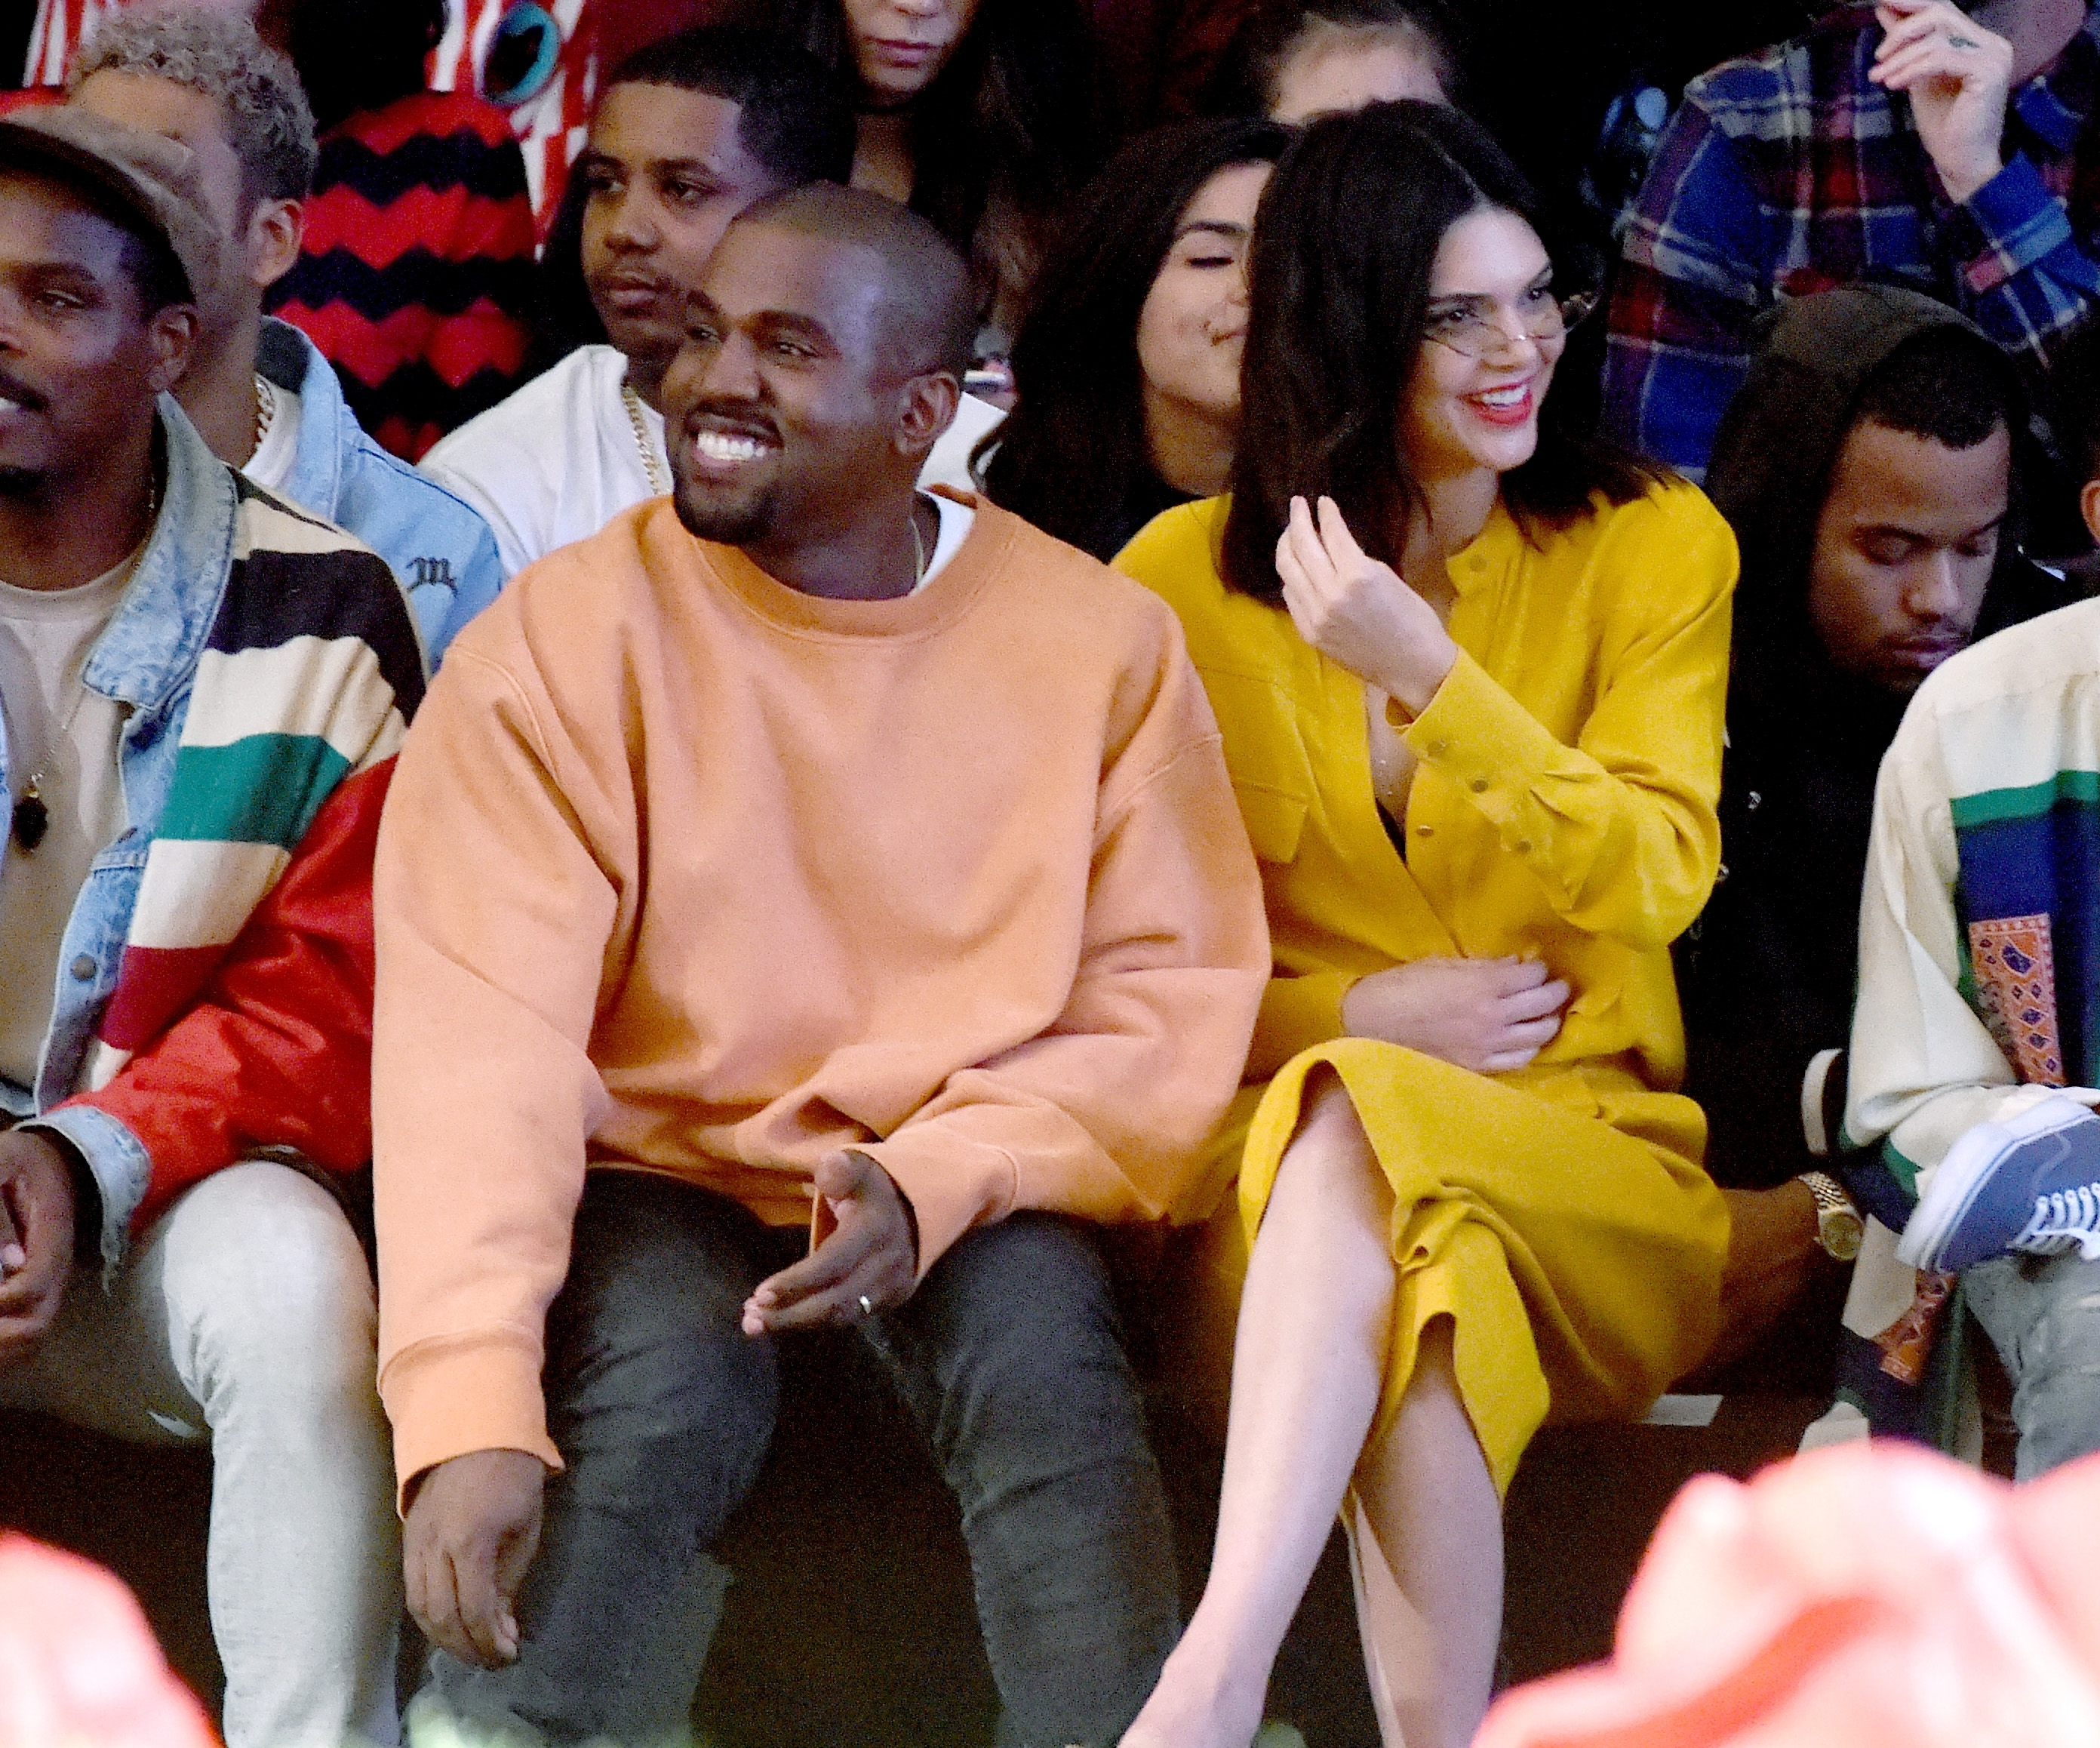 The Internet Really Wants Kanye West To Be The Super Bowl pertaining to Kanye West Super Bowl